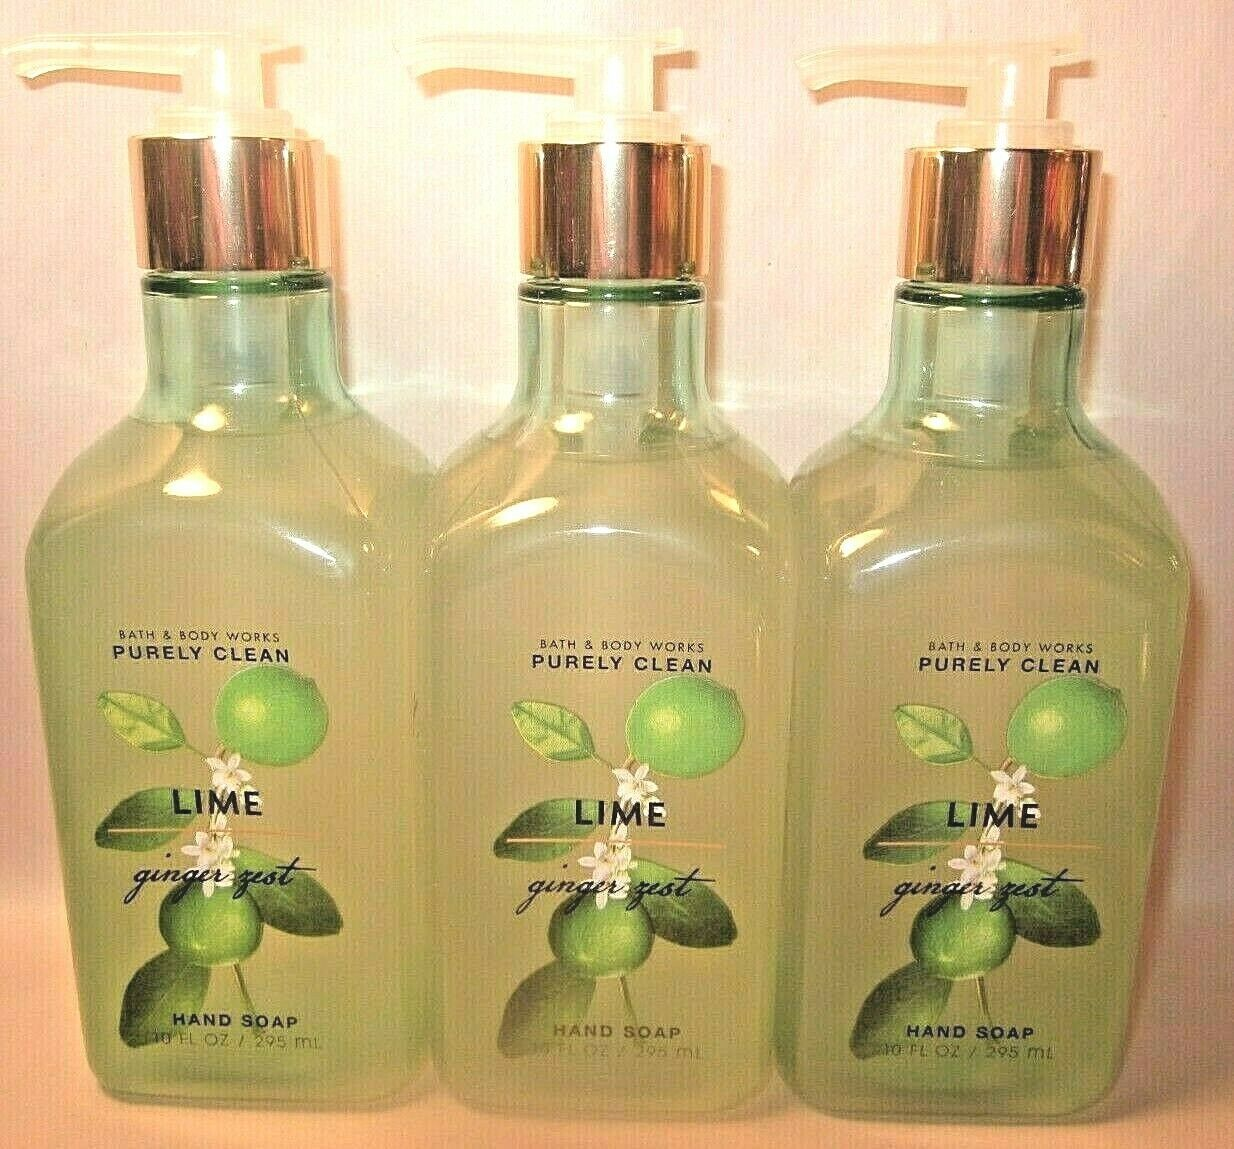 3 Bath & Body Works Purely Clean Hand Soap 10 oz Lime Ginger Zest